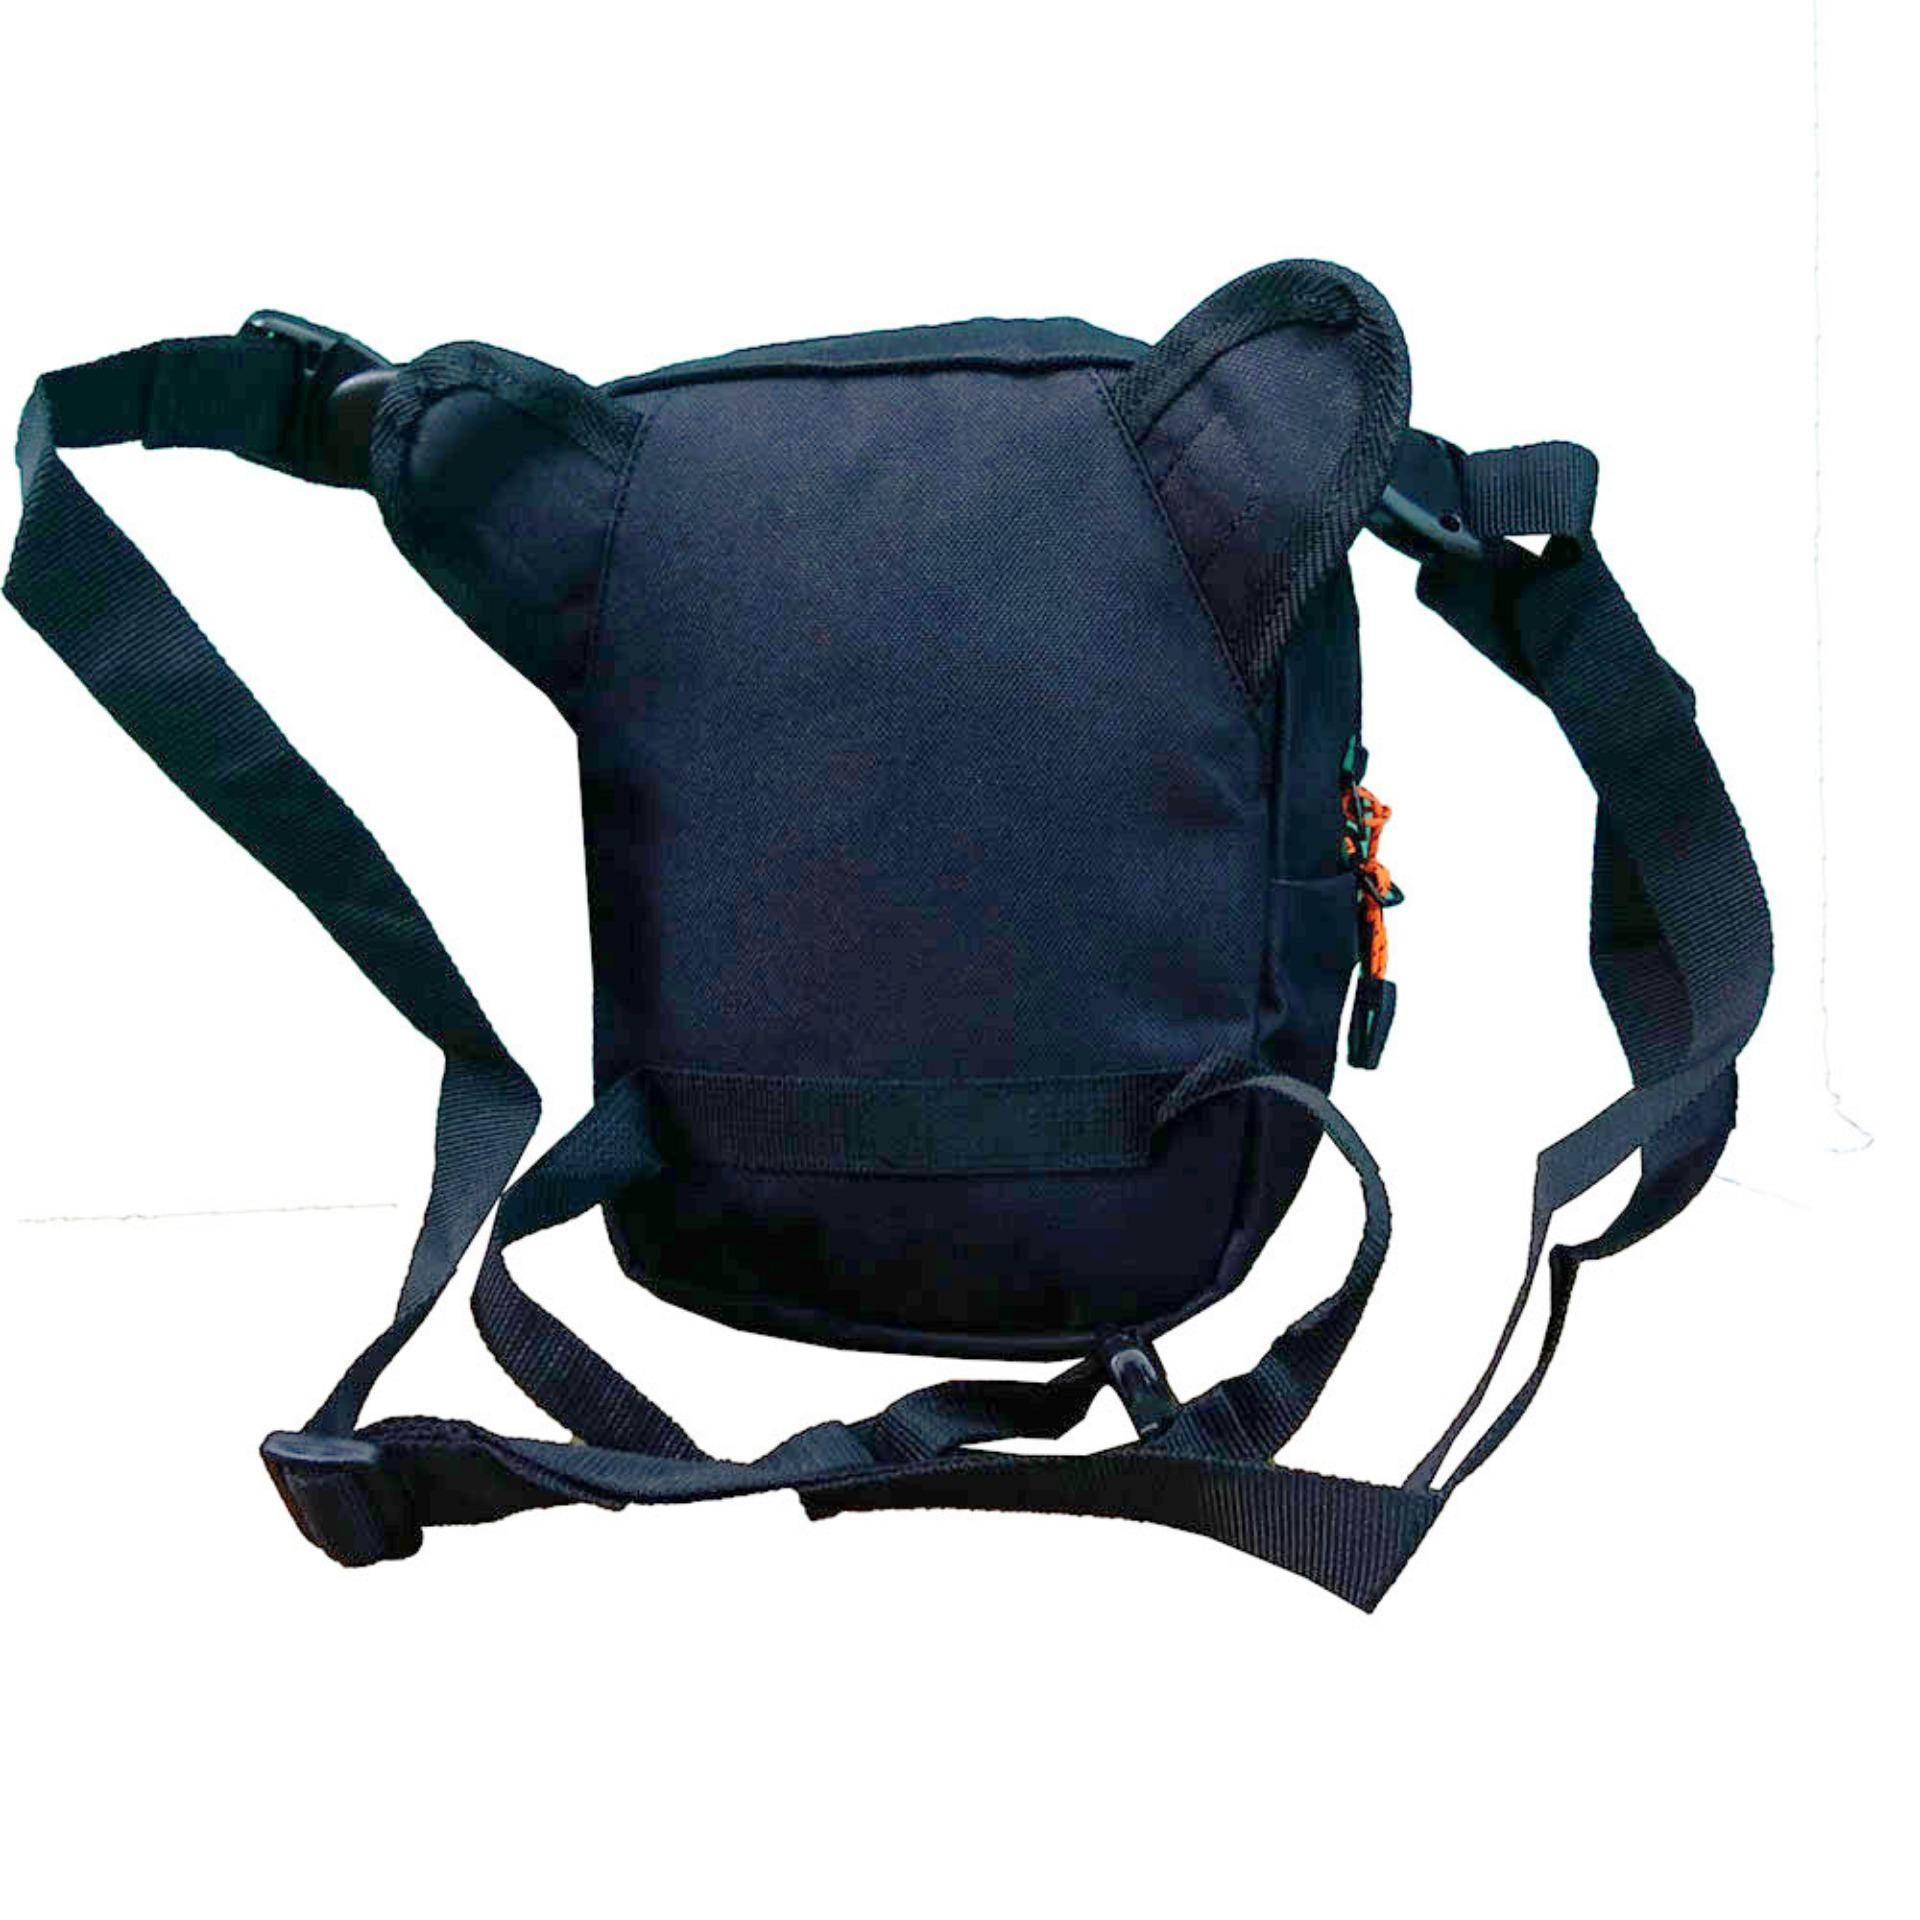 ... Review of Tracker Tas Slempang Tas Paha Tas Pinggang 3in1 40702 8 Original Black belanja murah